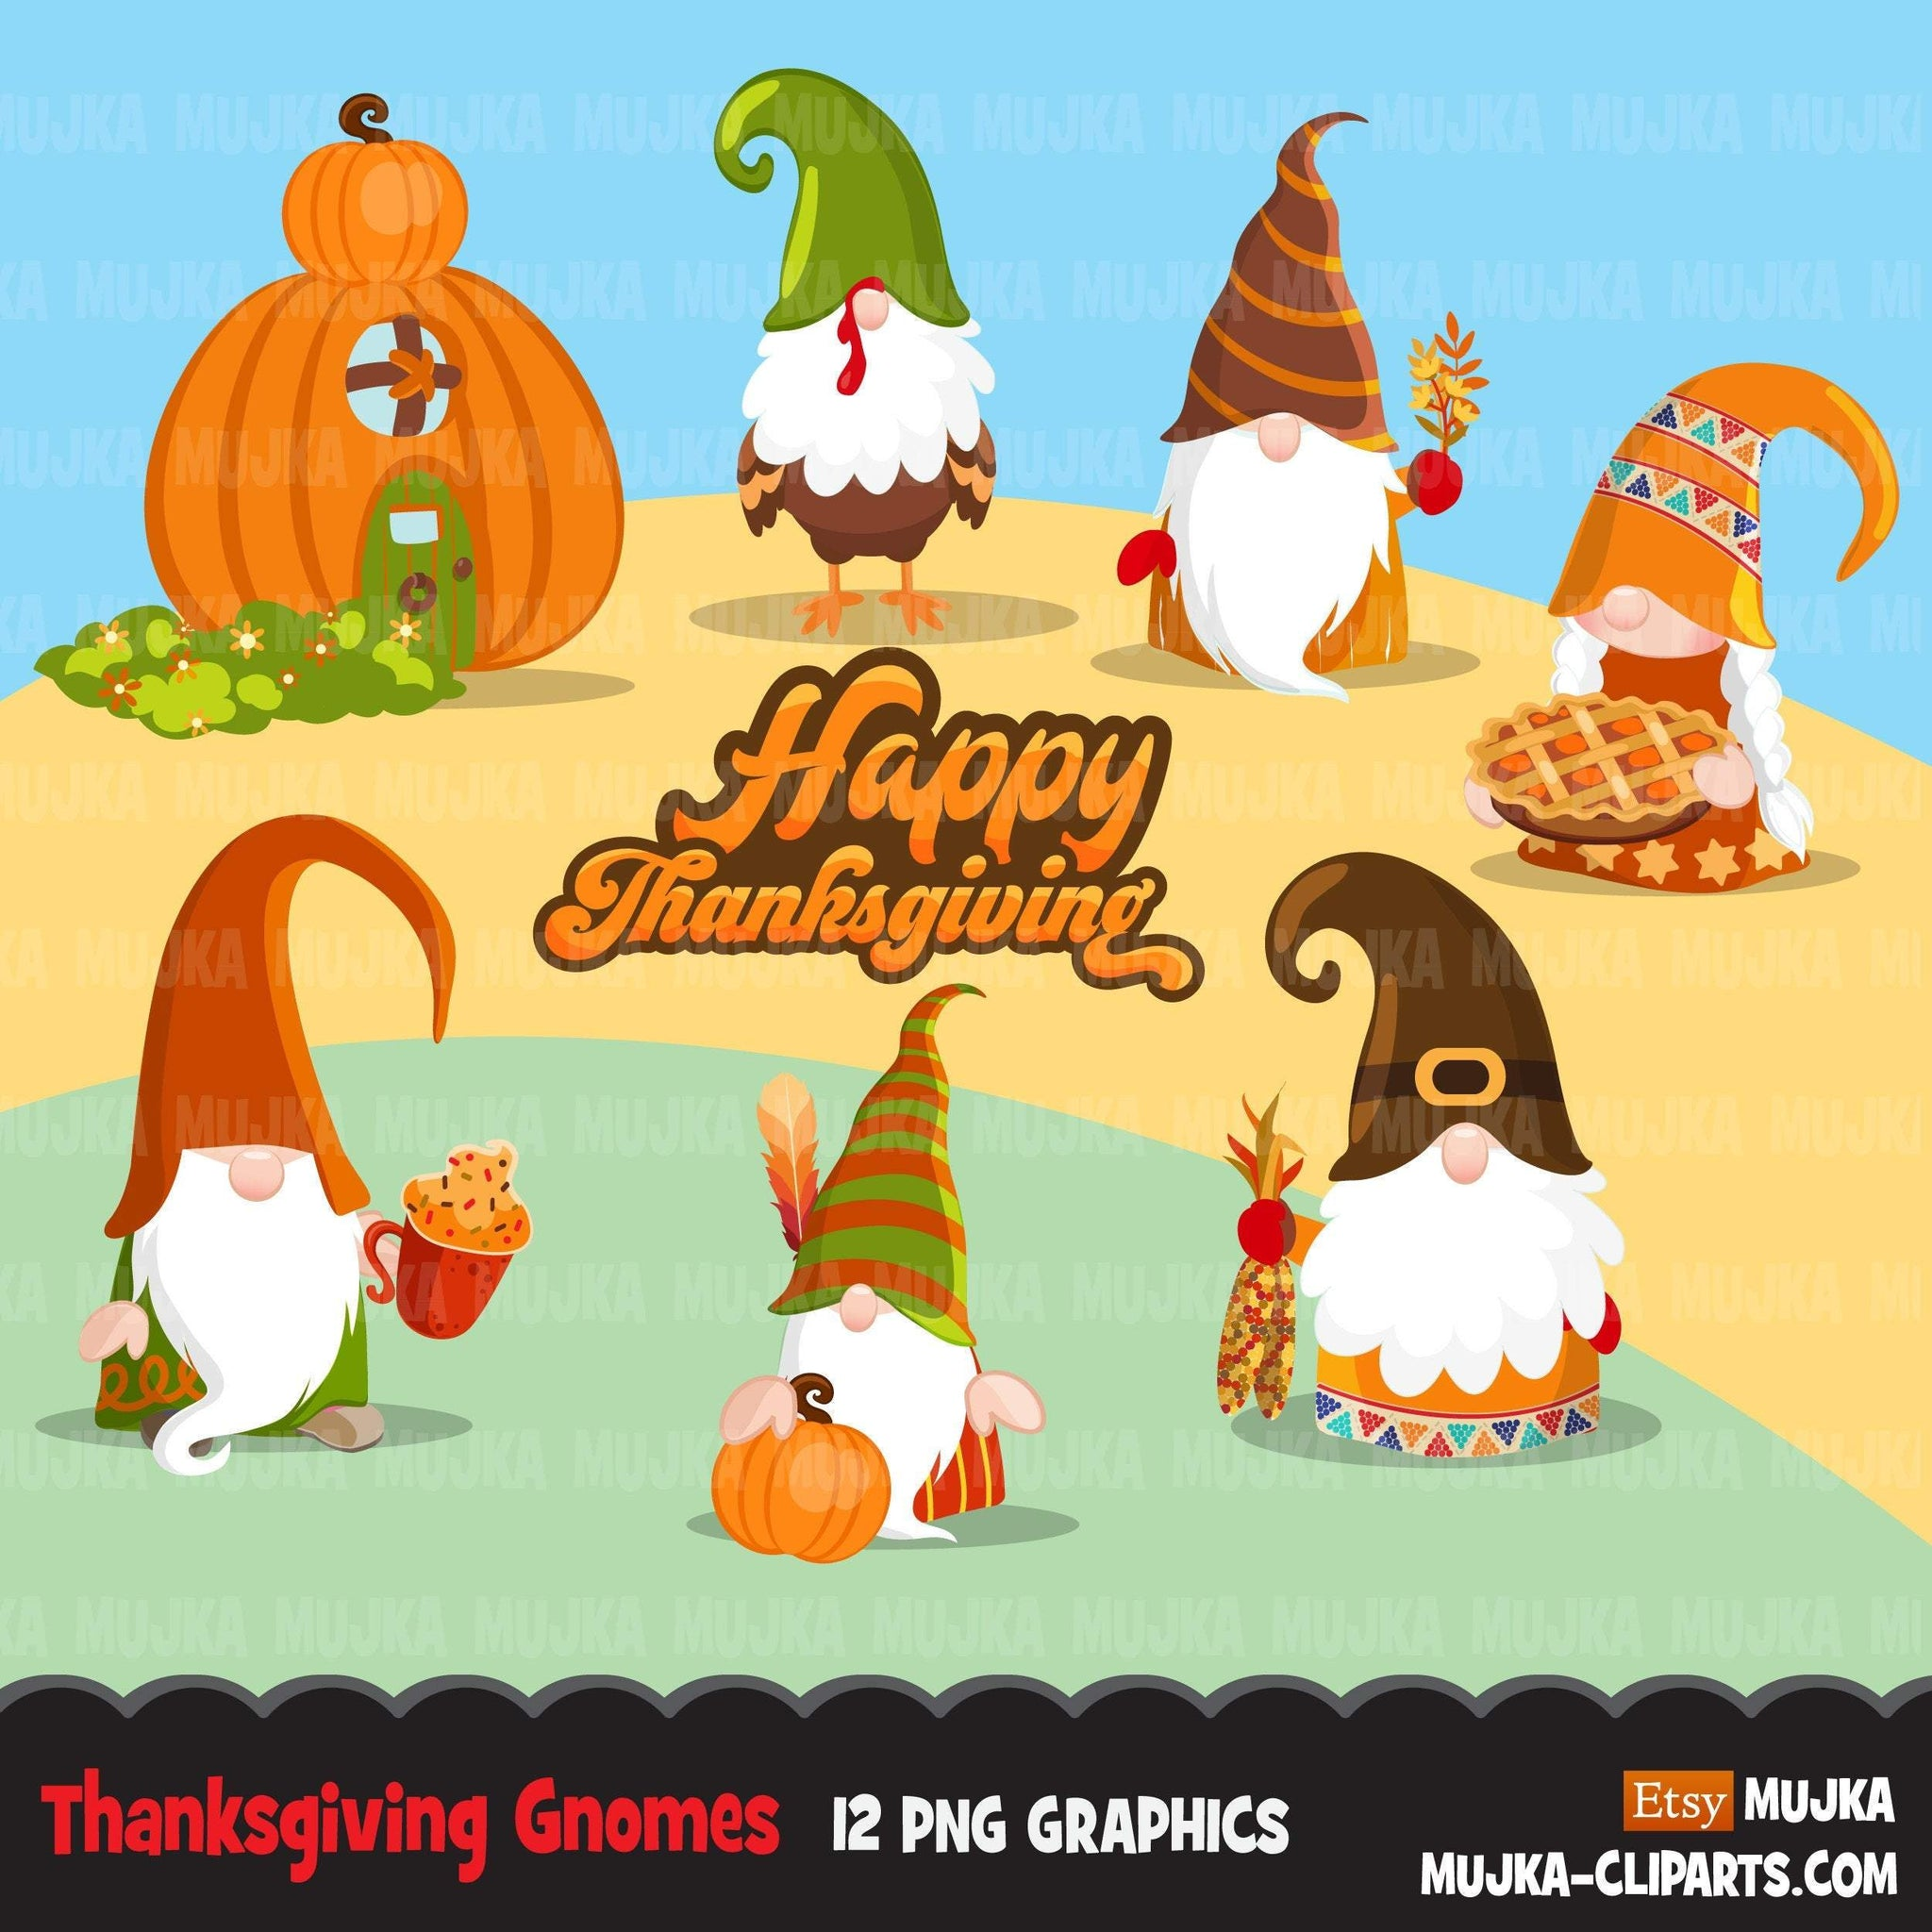 Thanksgiving gnomes Clipart, Scandinavian Gnome graphics, pumpkin, gobble gobble cute characters clip art